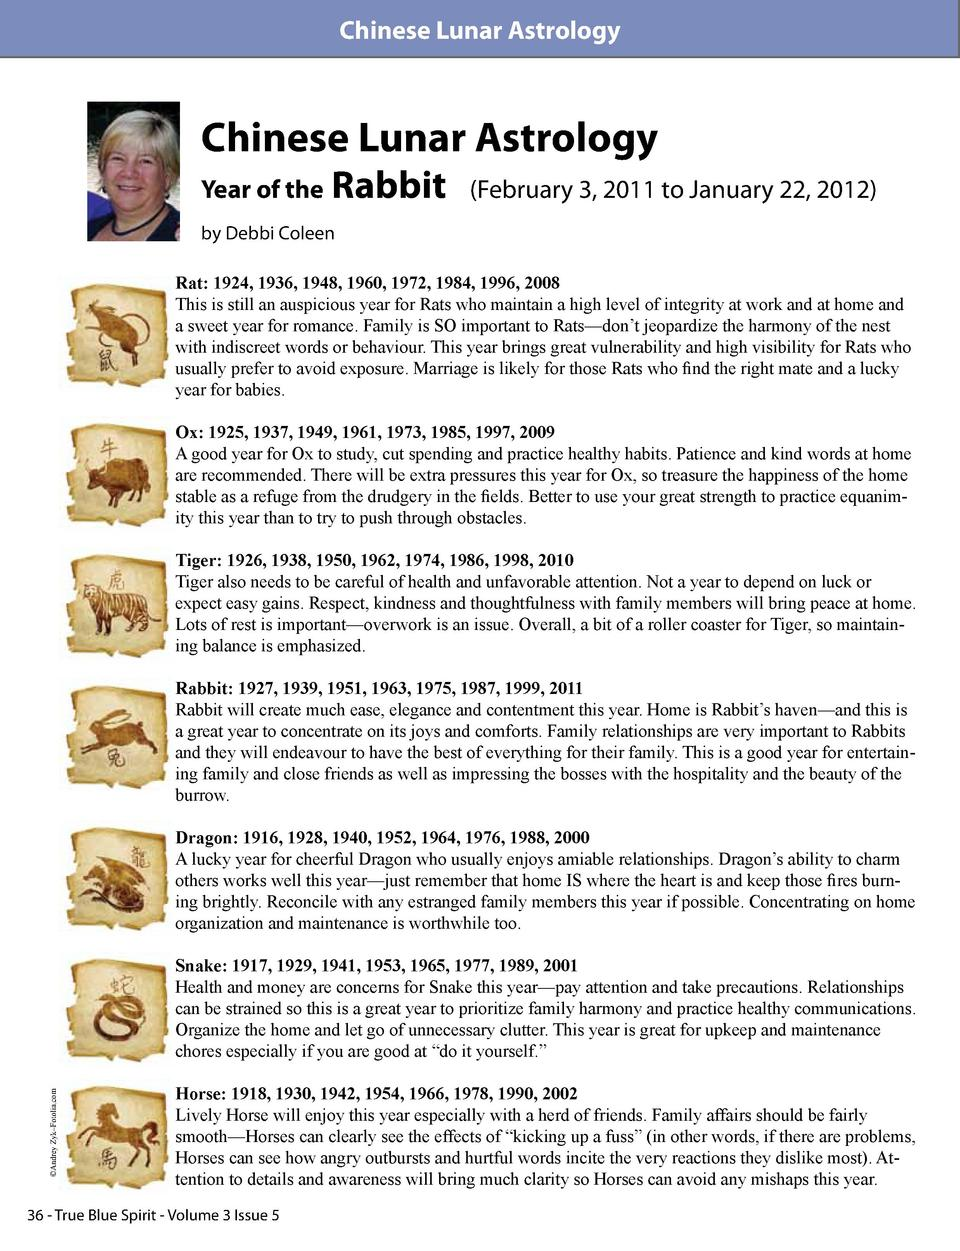 Chinese Lunar Astrology  Chinese Lunar Astrology Year of the  Rabbit   February 3, 2011 to January 22, 2012   by Debbi Col...